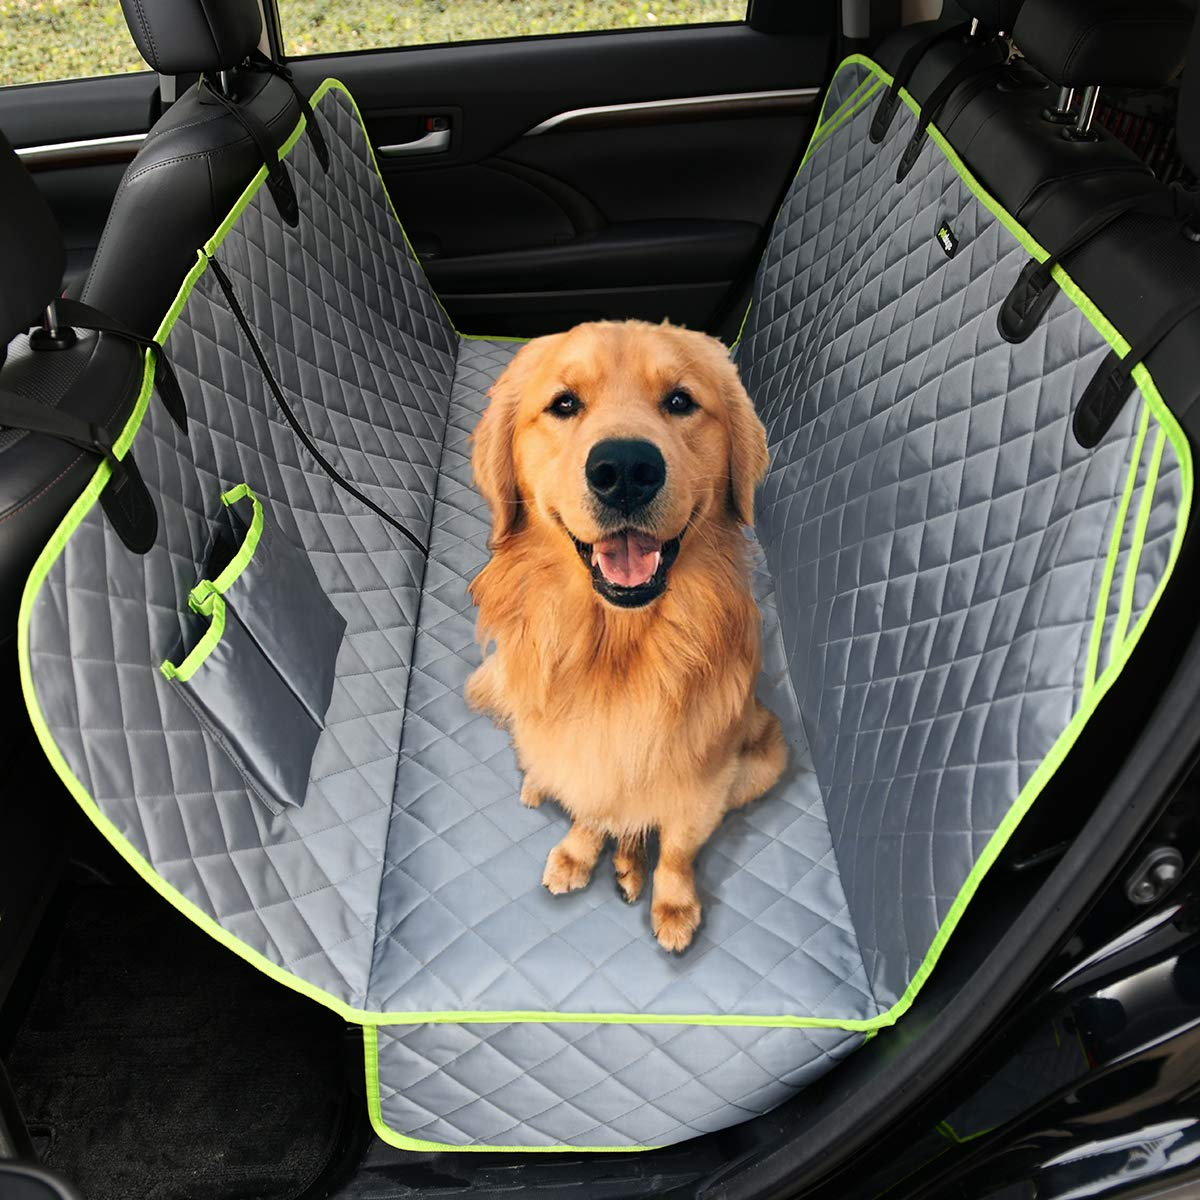 petalage Dog Car Seat Cover Gray Backseats Cover Hammock for Dogs 100 Waterproof Nonslip Durable Soft Pet Seat Cover for Cars Trucks and SUVs with Pet Seat Belt HYSC3A